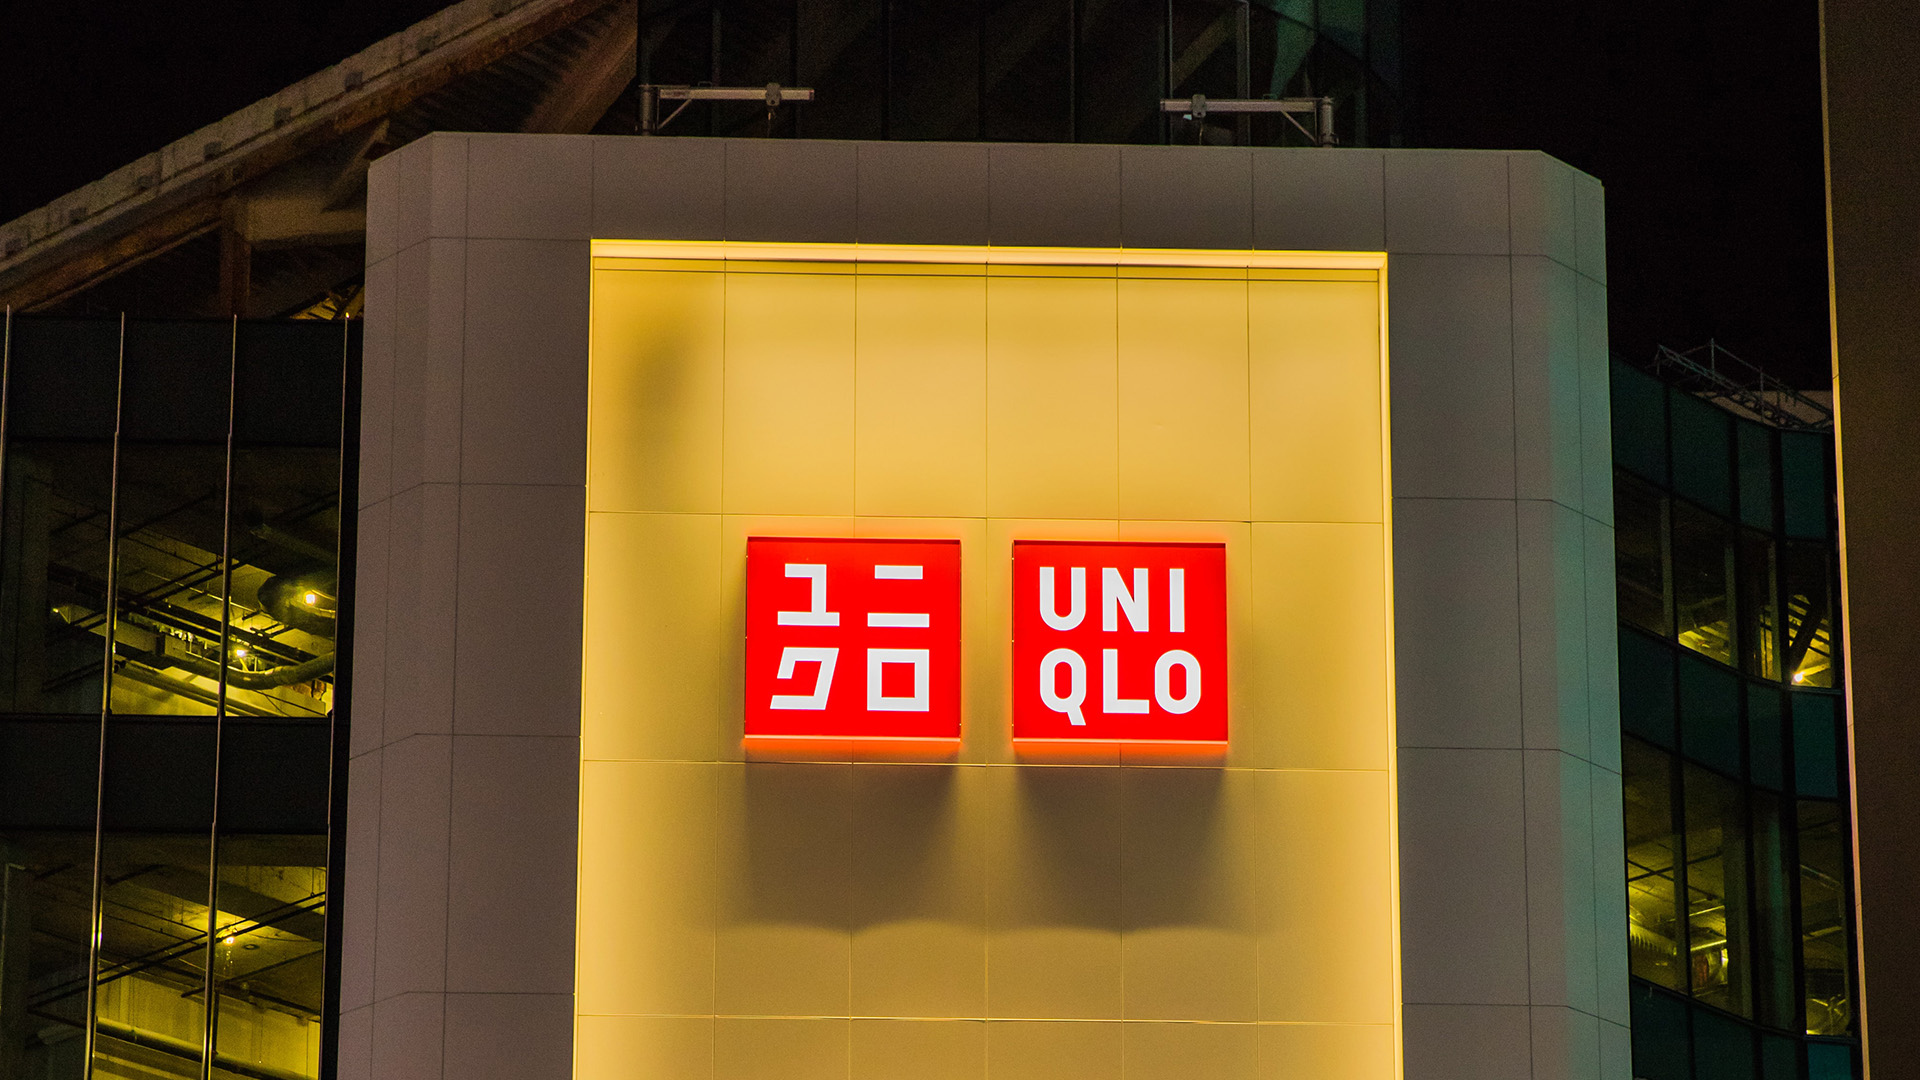 Uniqlo marketing strategy